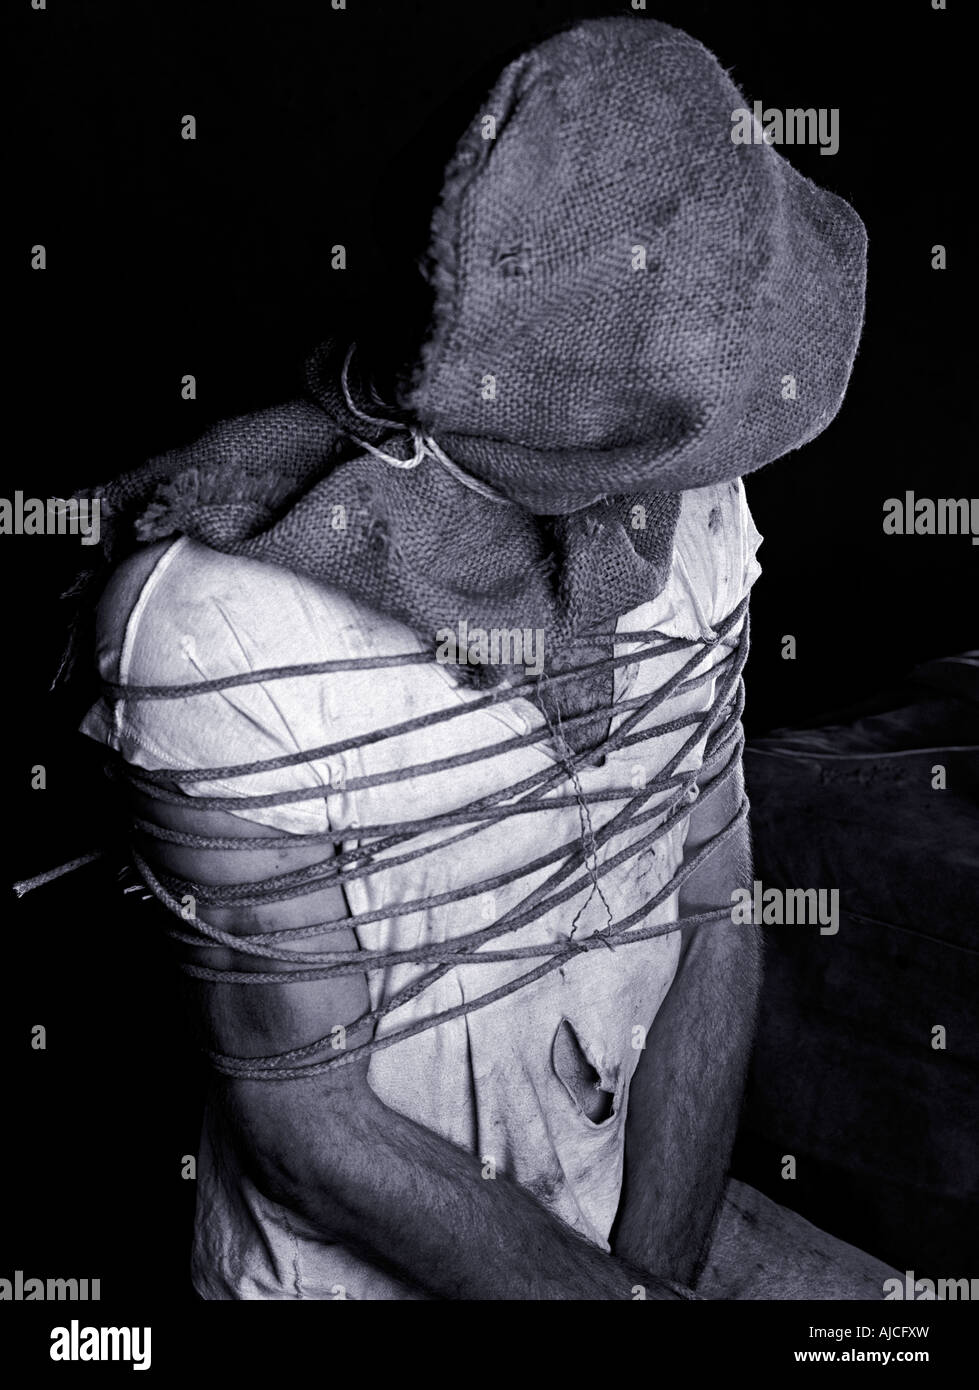 Man in his twenties bound with rope. - Stock Image